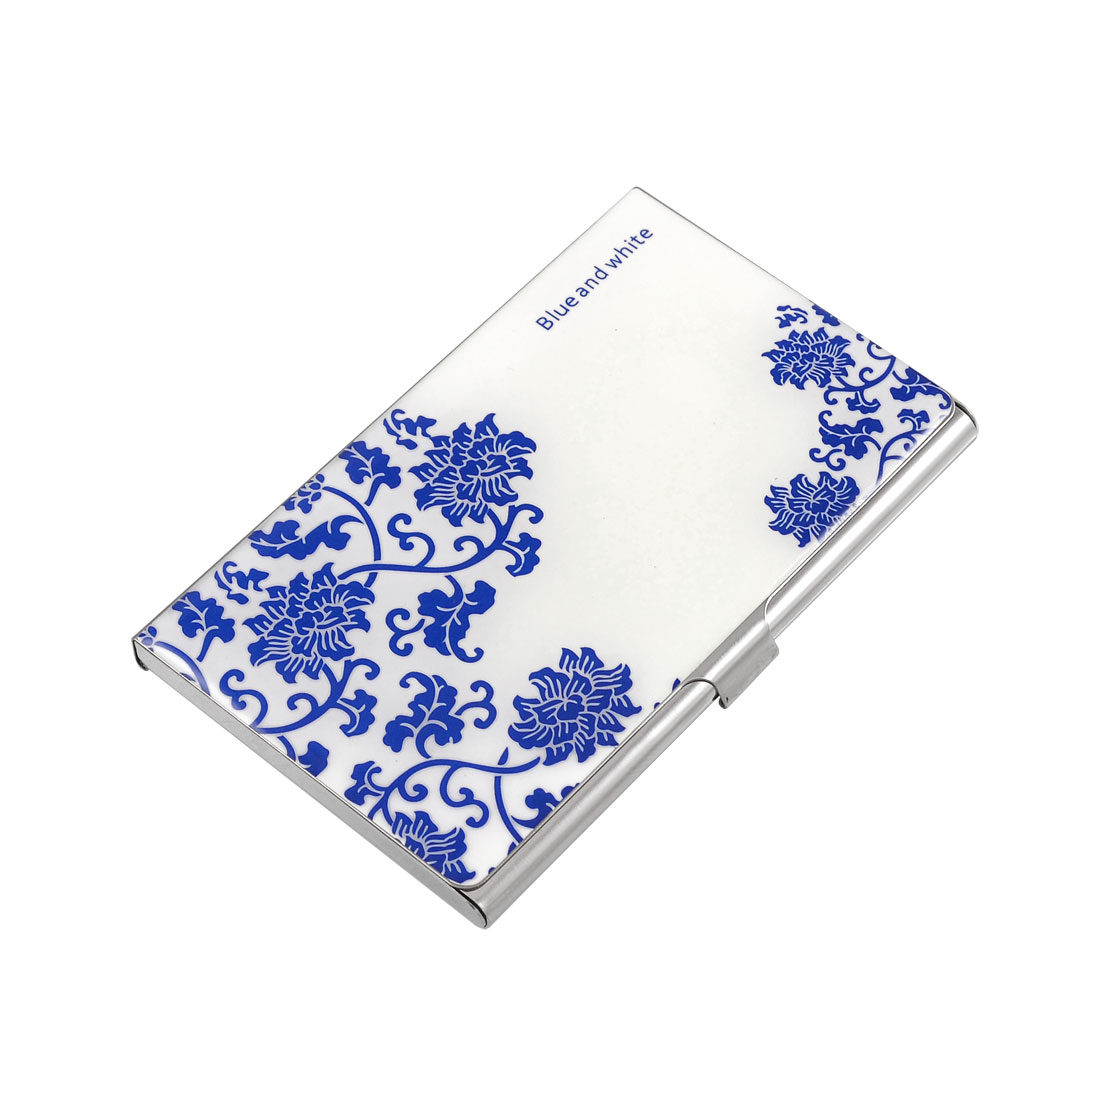 Blue and White Porcelain Pattern Horizontal Credit Bank Cards Holder Box